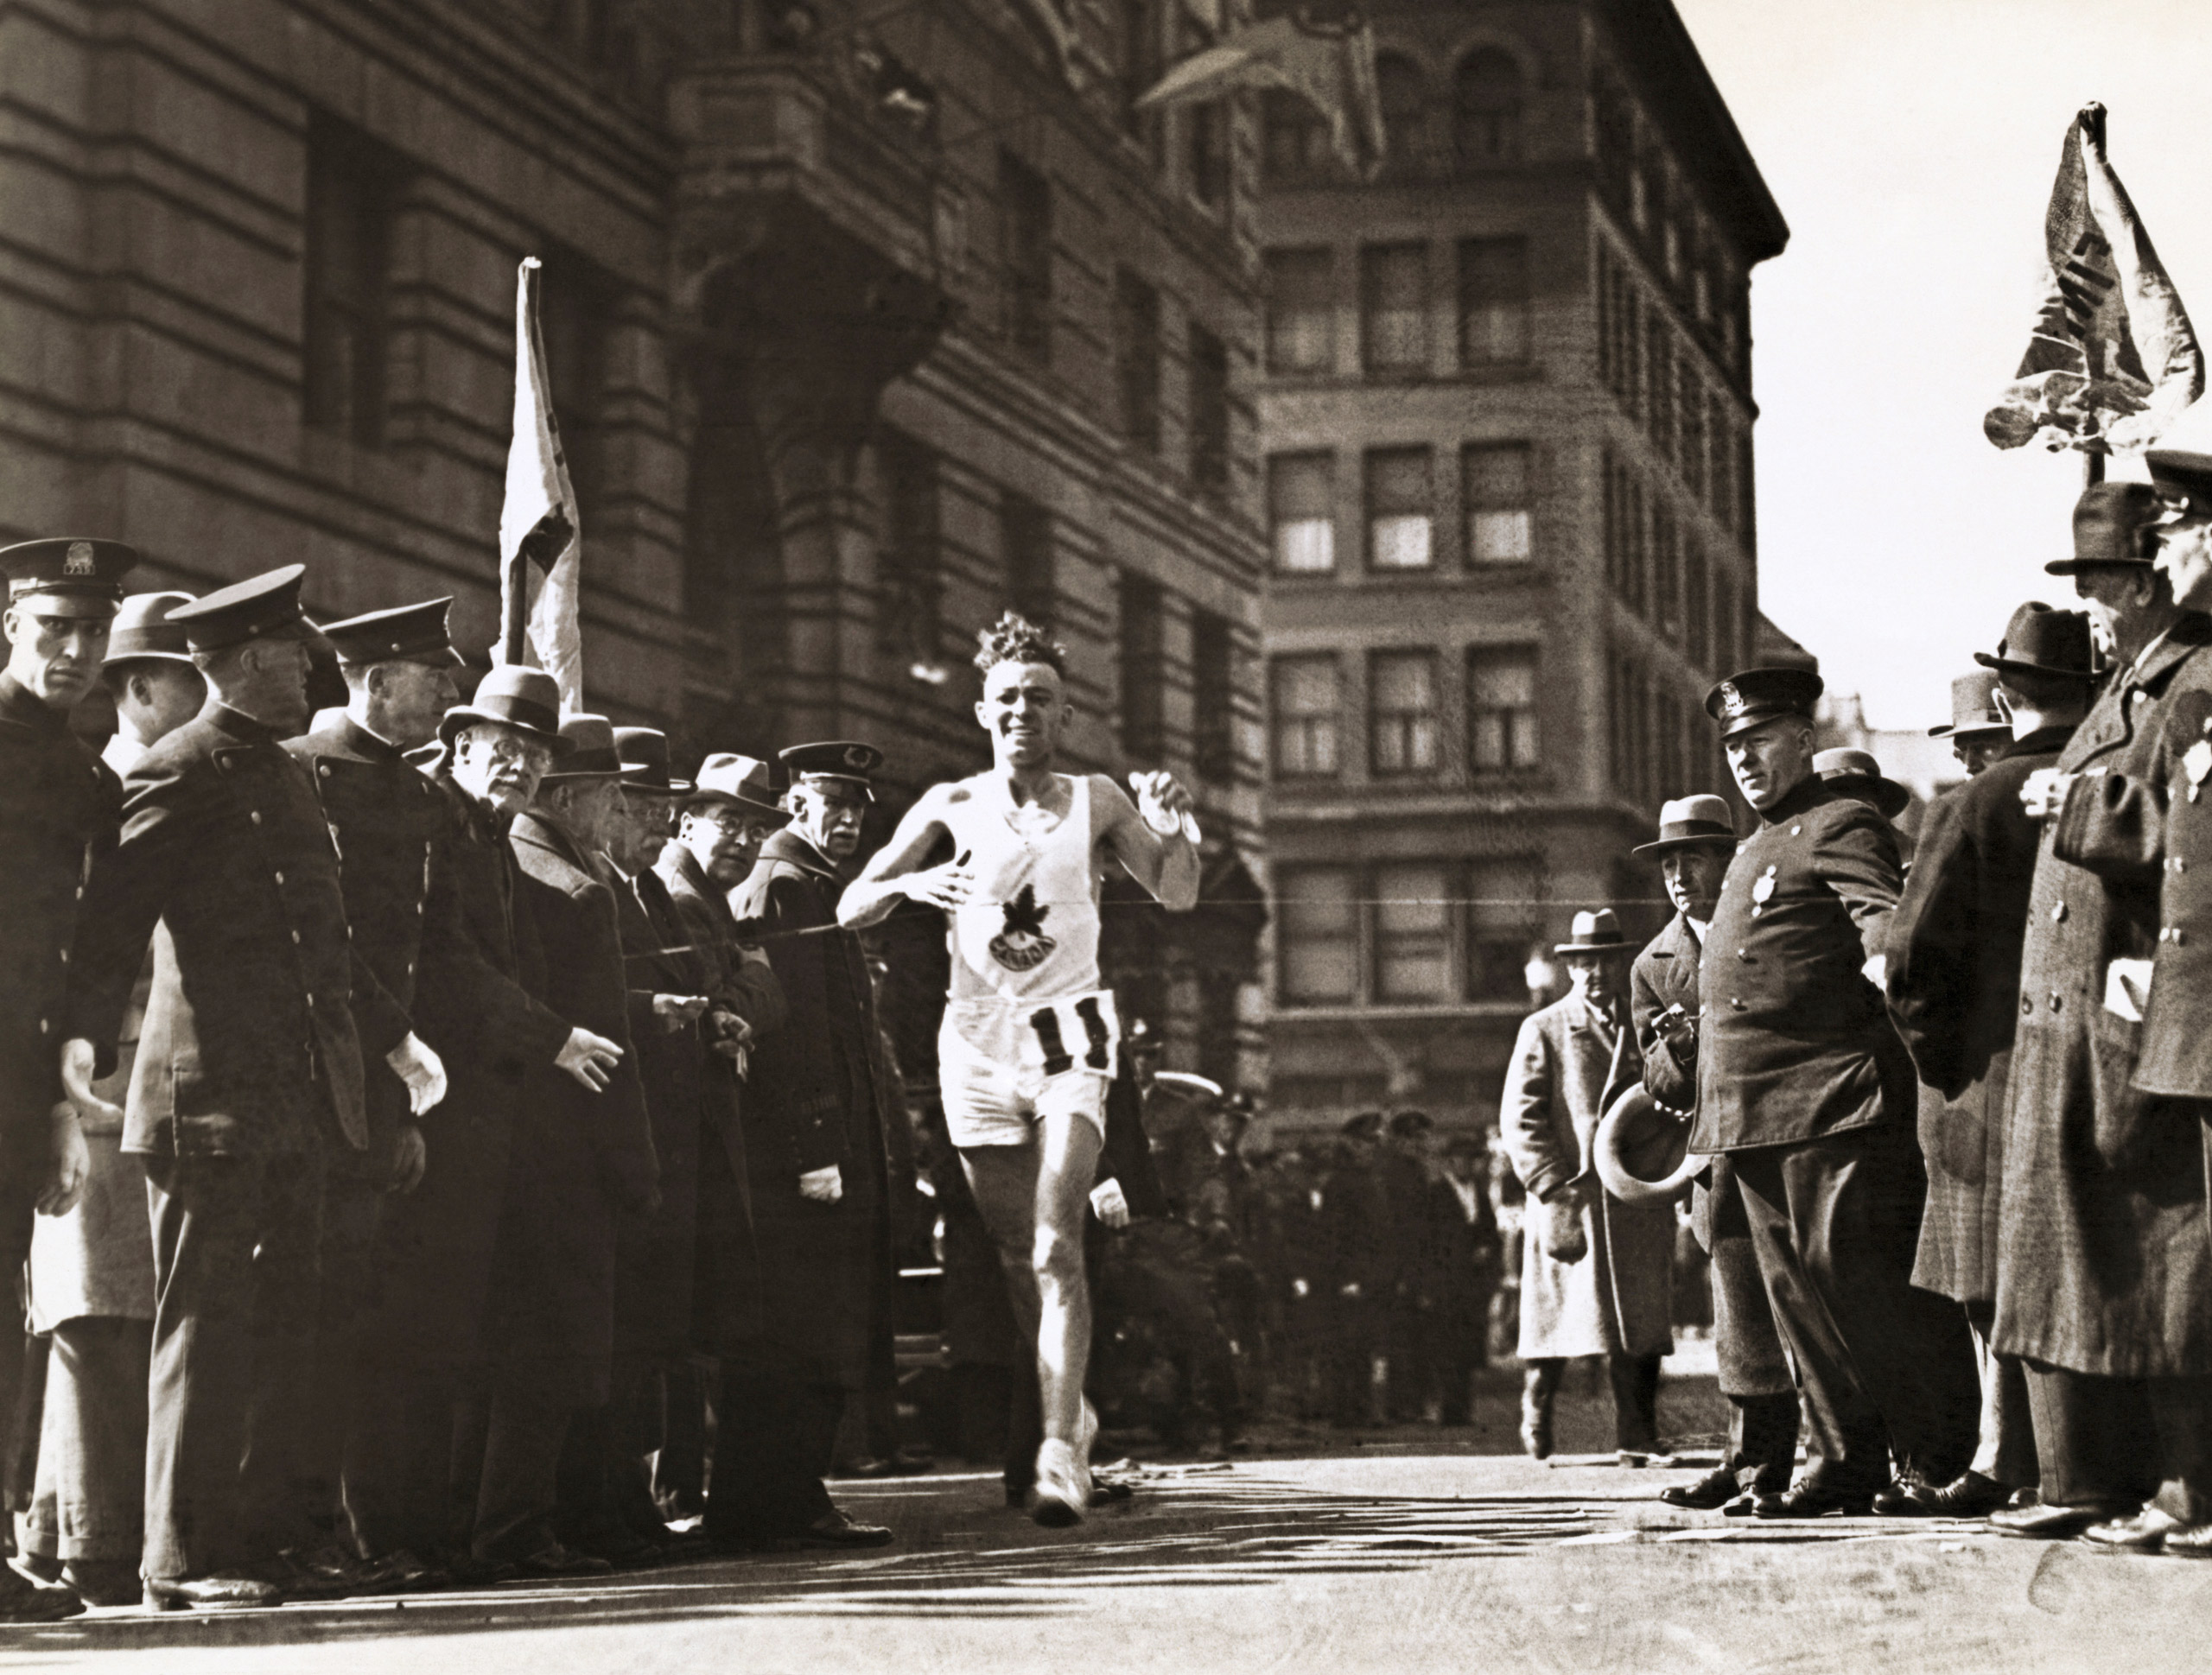 Johnny Miles, winner of the 1926 Boston Marathon.